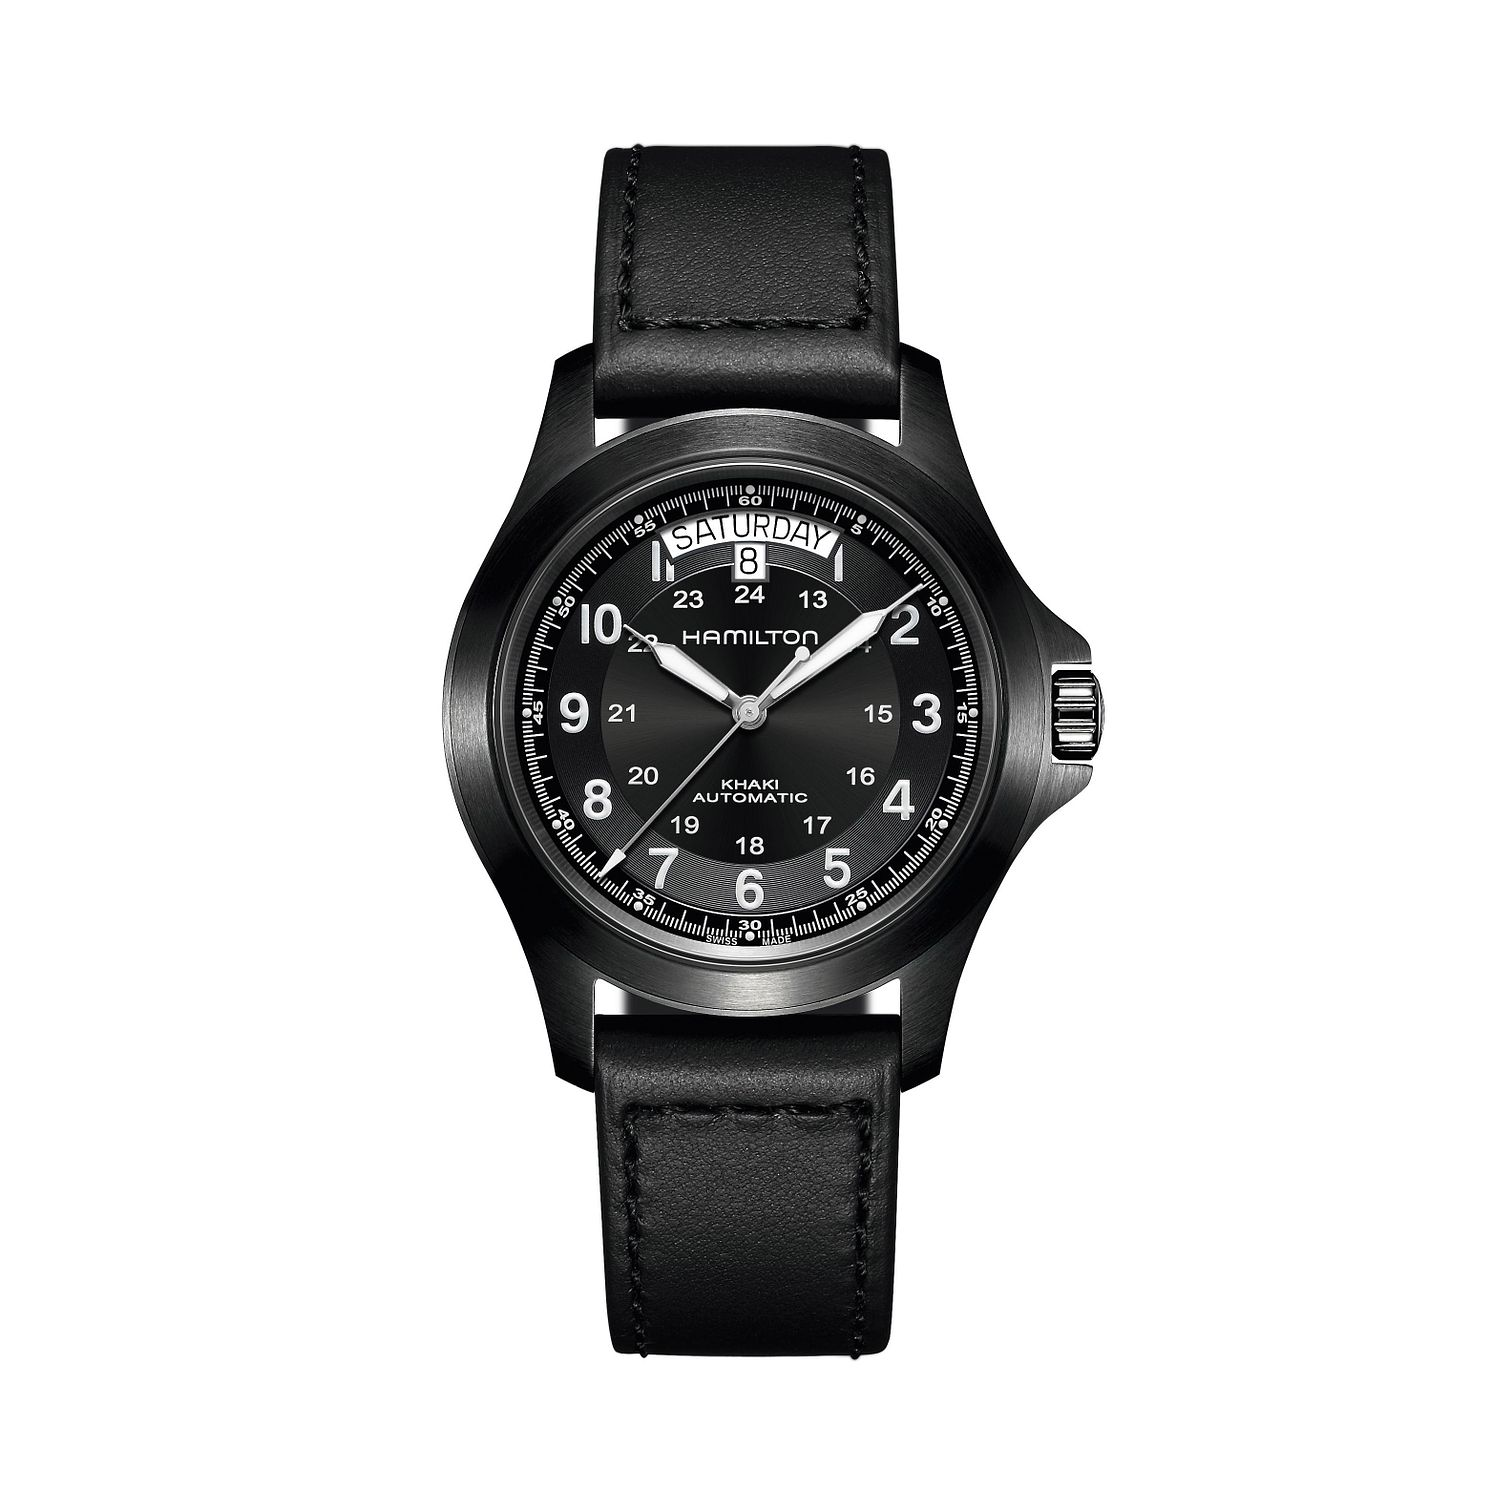 Hamilton Khaki Field King Auto Black Leather Strap Watch - Product number 1252283